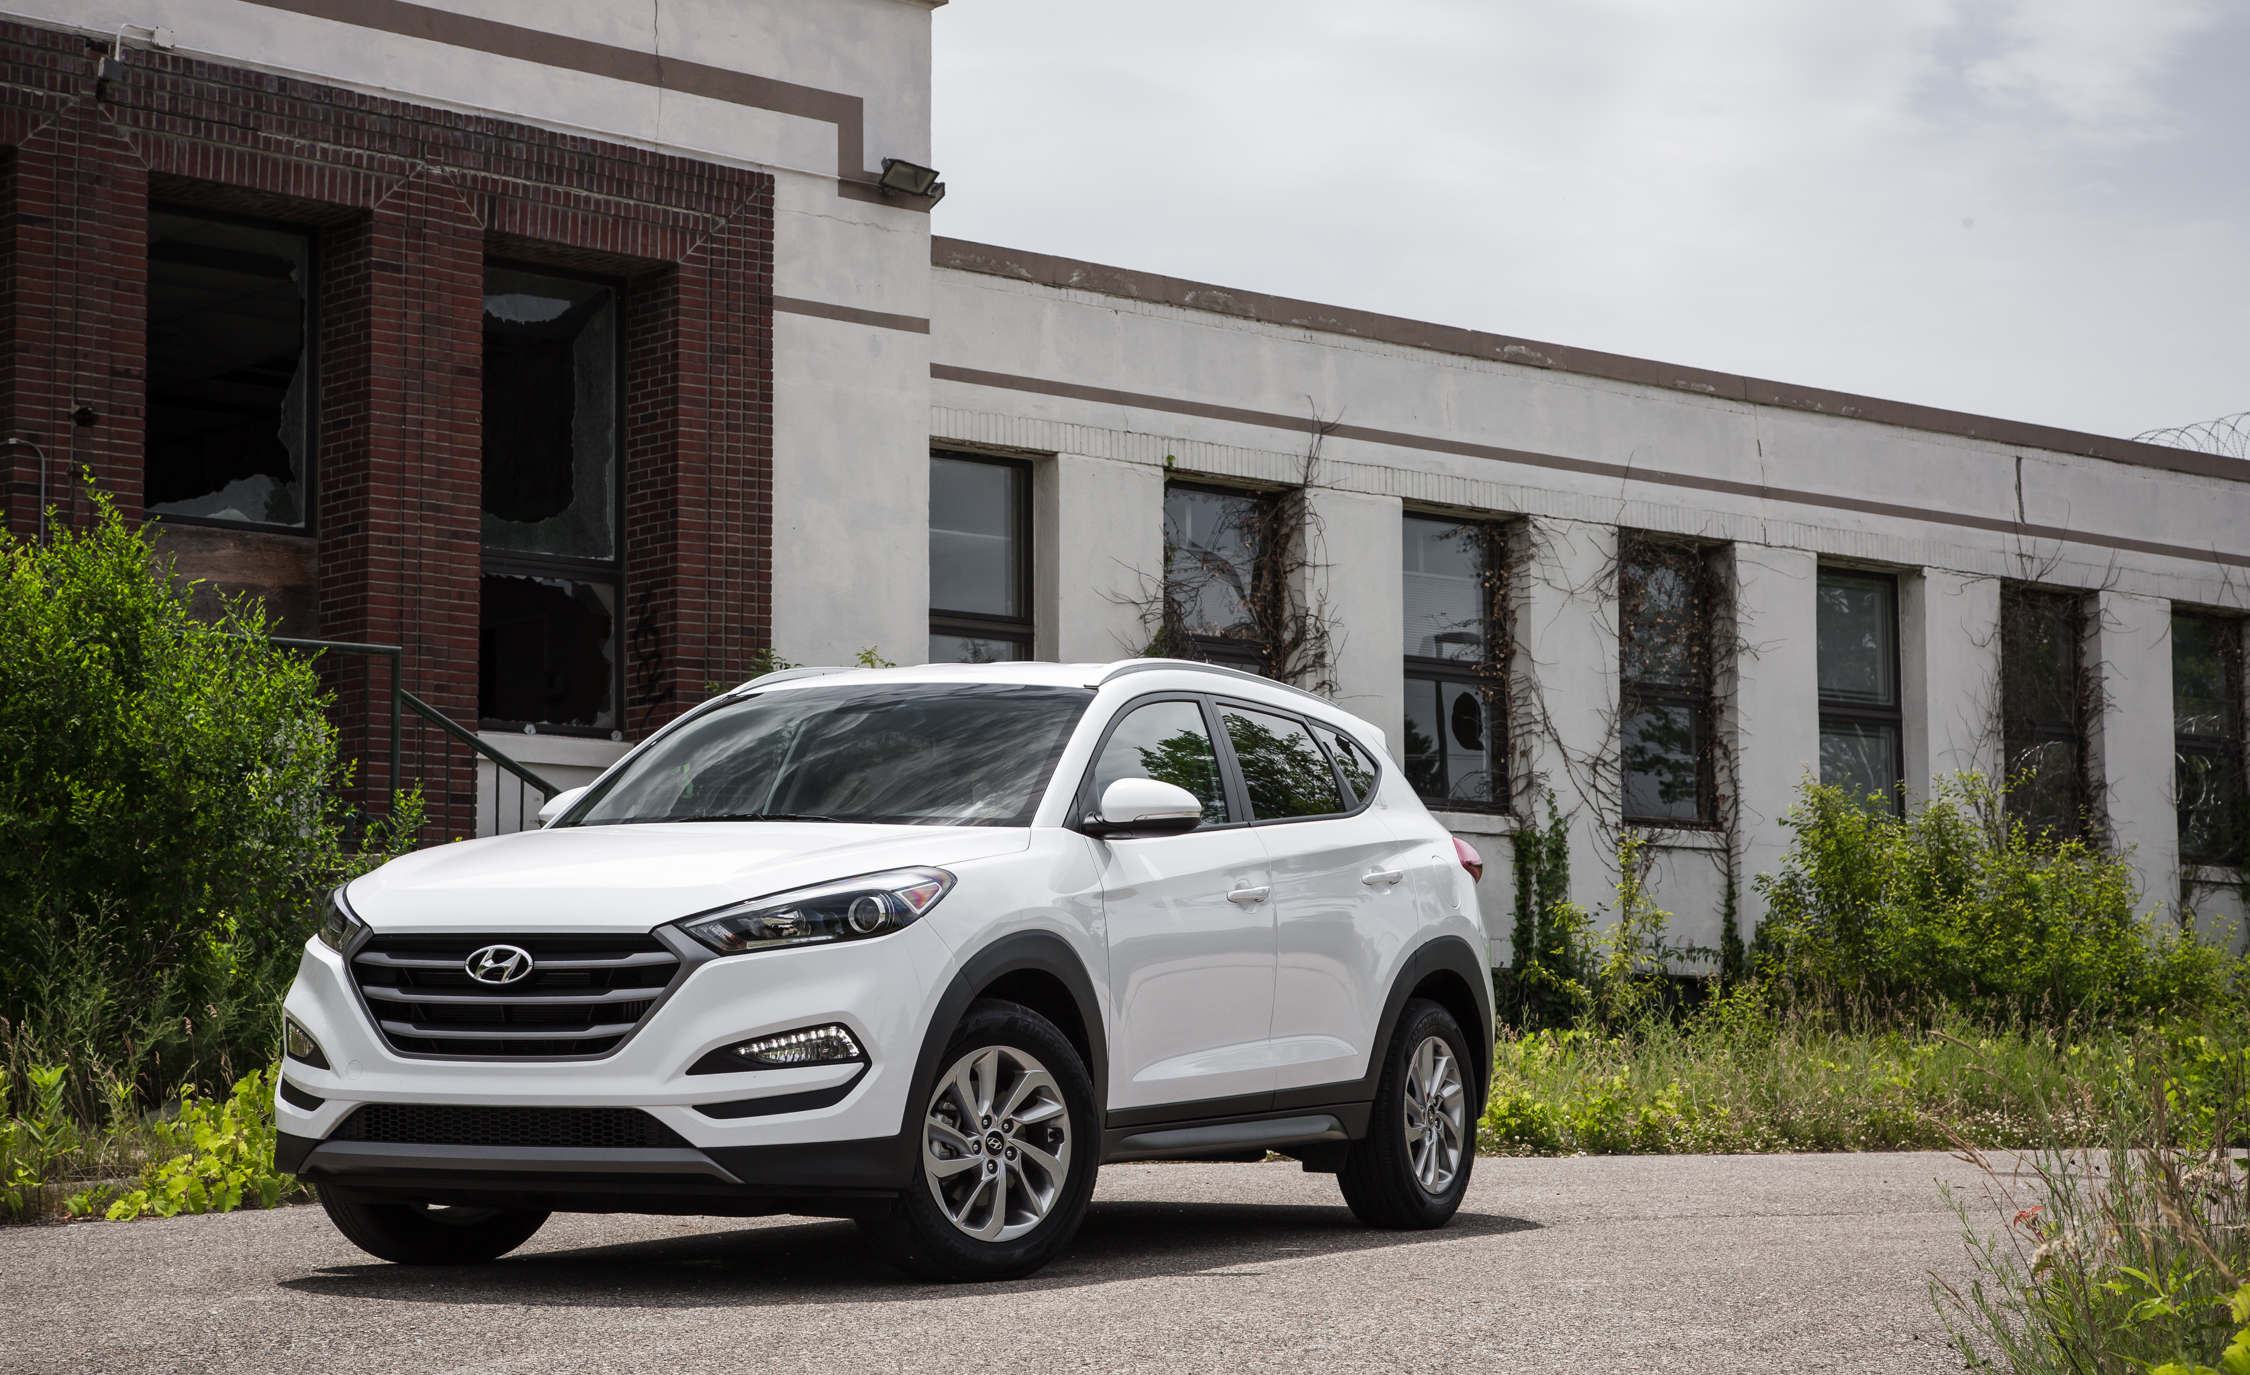 Hyundai Tucson Mildly Updated For 2017 Suv News And Analysis